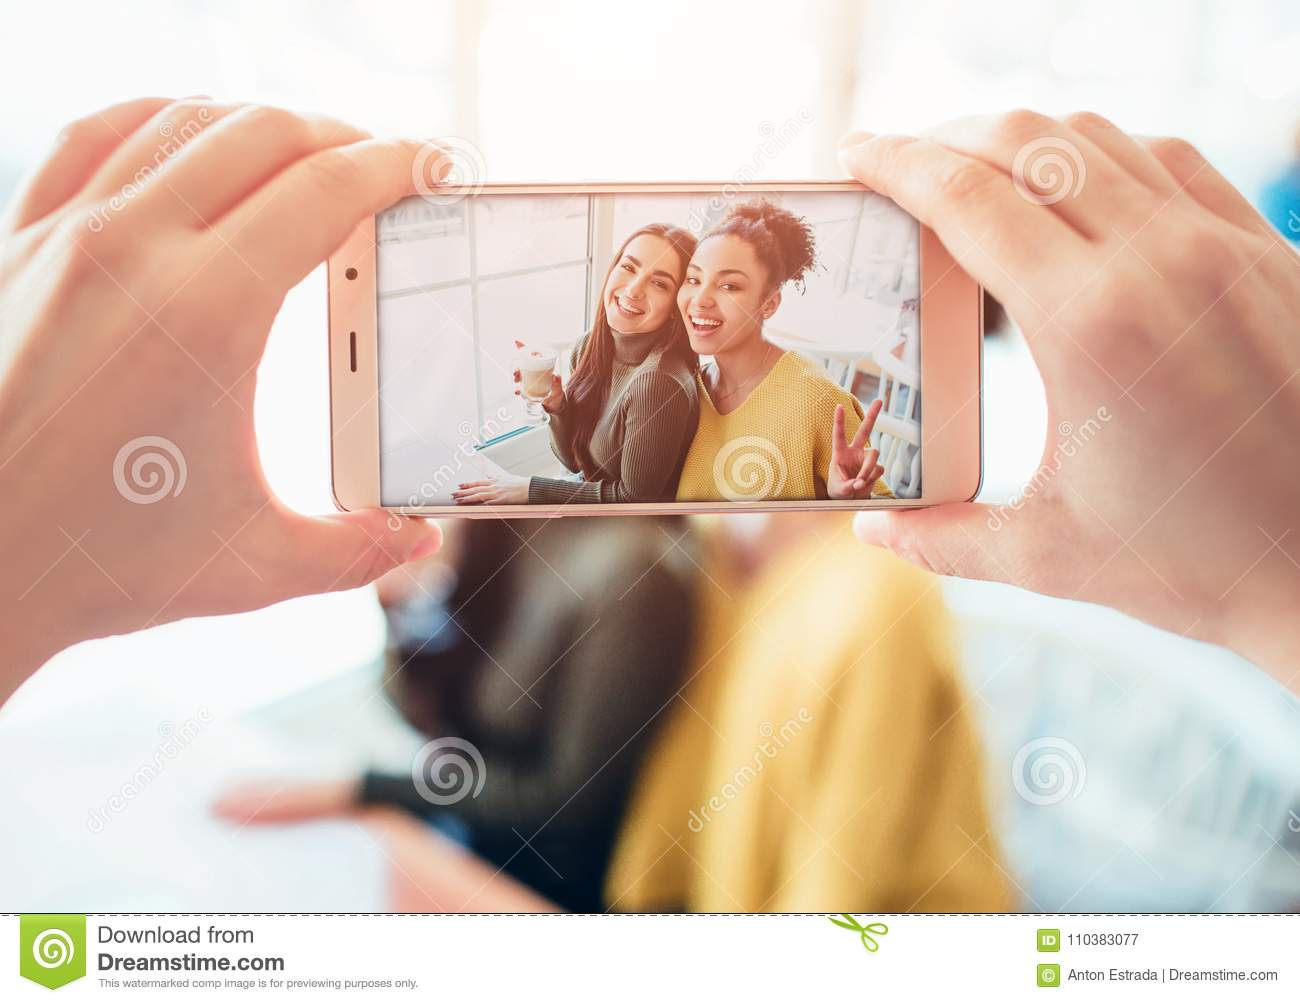 Picture of somebody taking a picture of two best friends that are happy to see each other. They have asked somebody to